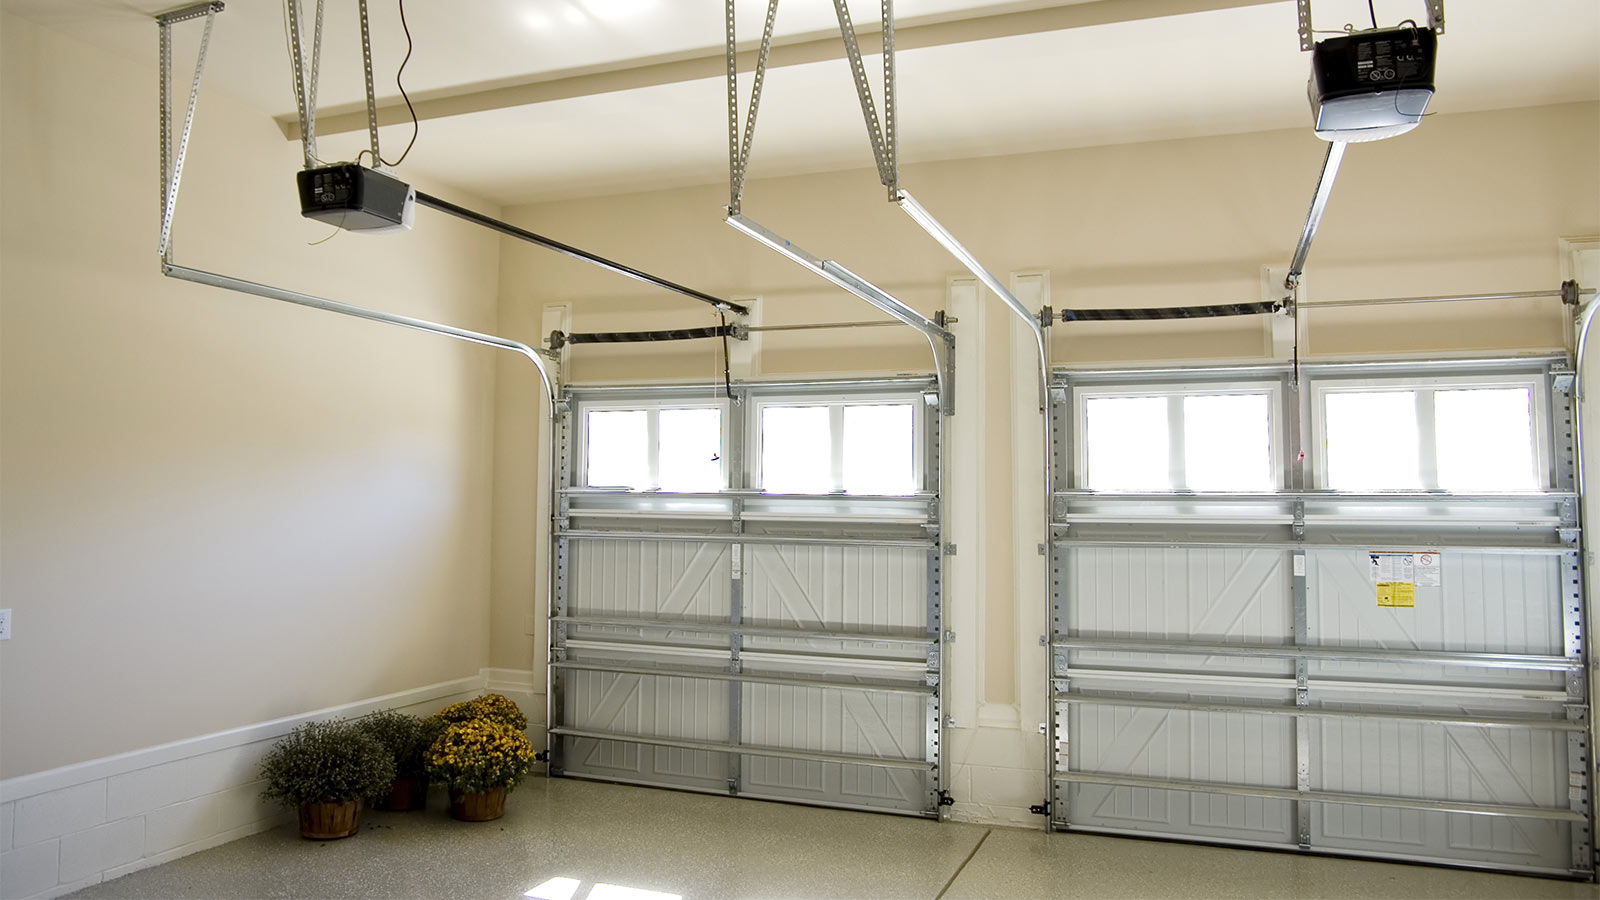 Sectional Garage Doors from Up and Over Doors Suffolk suppliers.